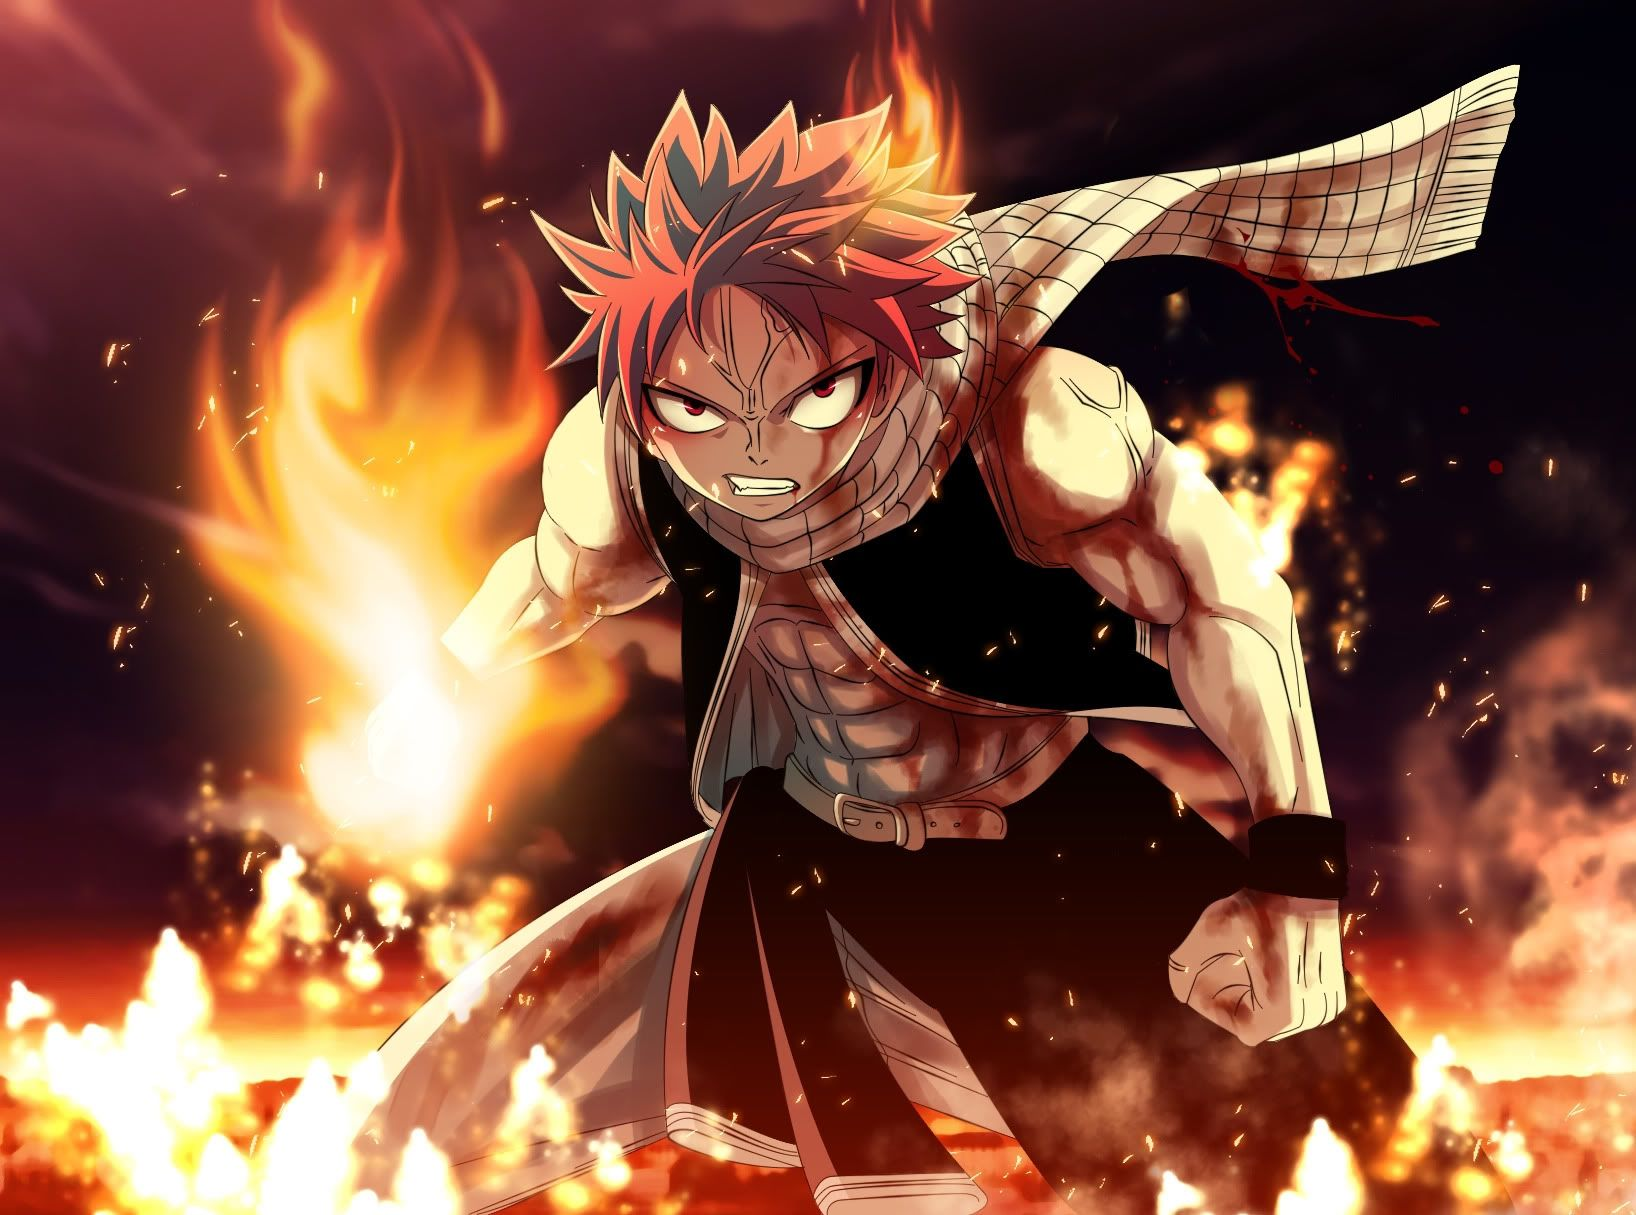 Cute Fairy Tail Wallpaper Hd Sweet Fairy Wallpapers Wallpaper Cave Fairy Tail Zerochan Anime Im Fairy Tail Happy Fairy Tail Happy Wallpapers Fairy Tail Funny